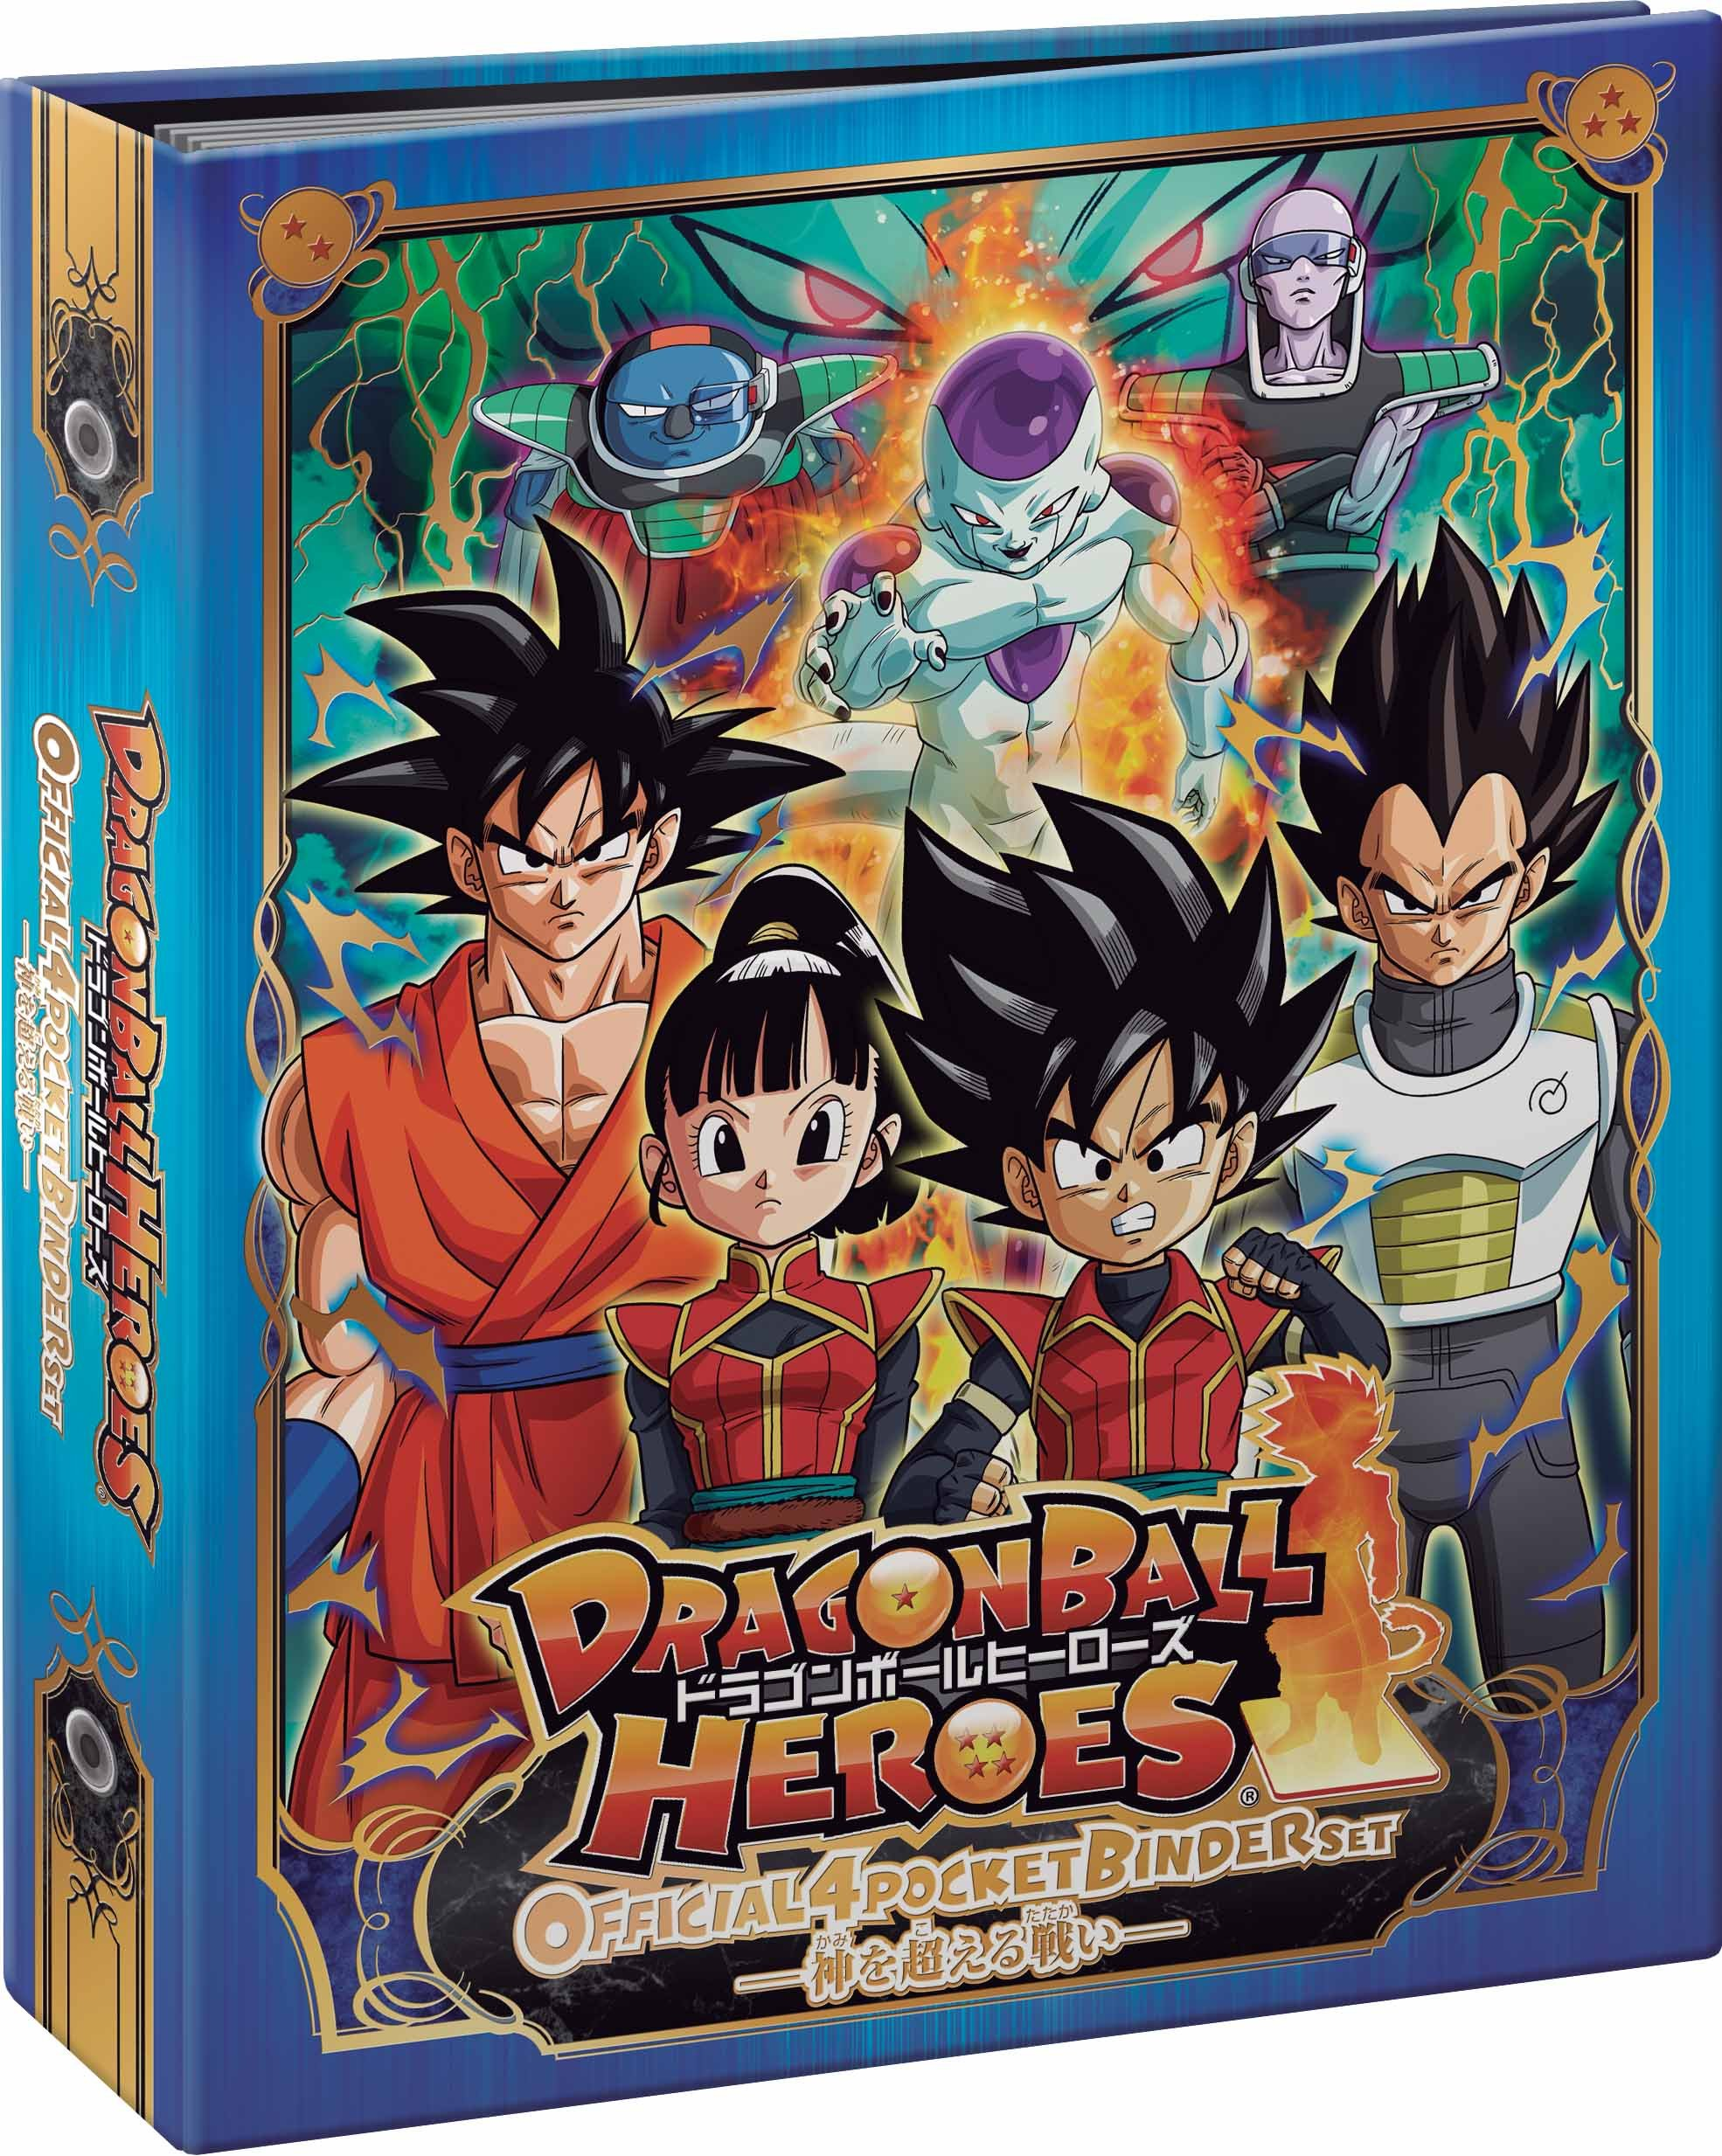 Dragon Ball Heroes Official 4 Pocket Binder Set Resurrection 'F' (Japan import)